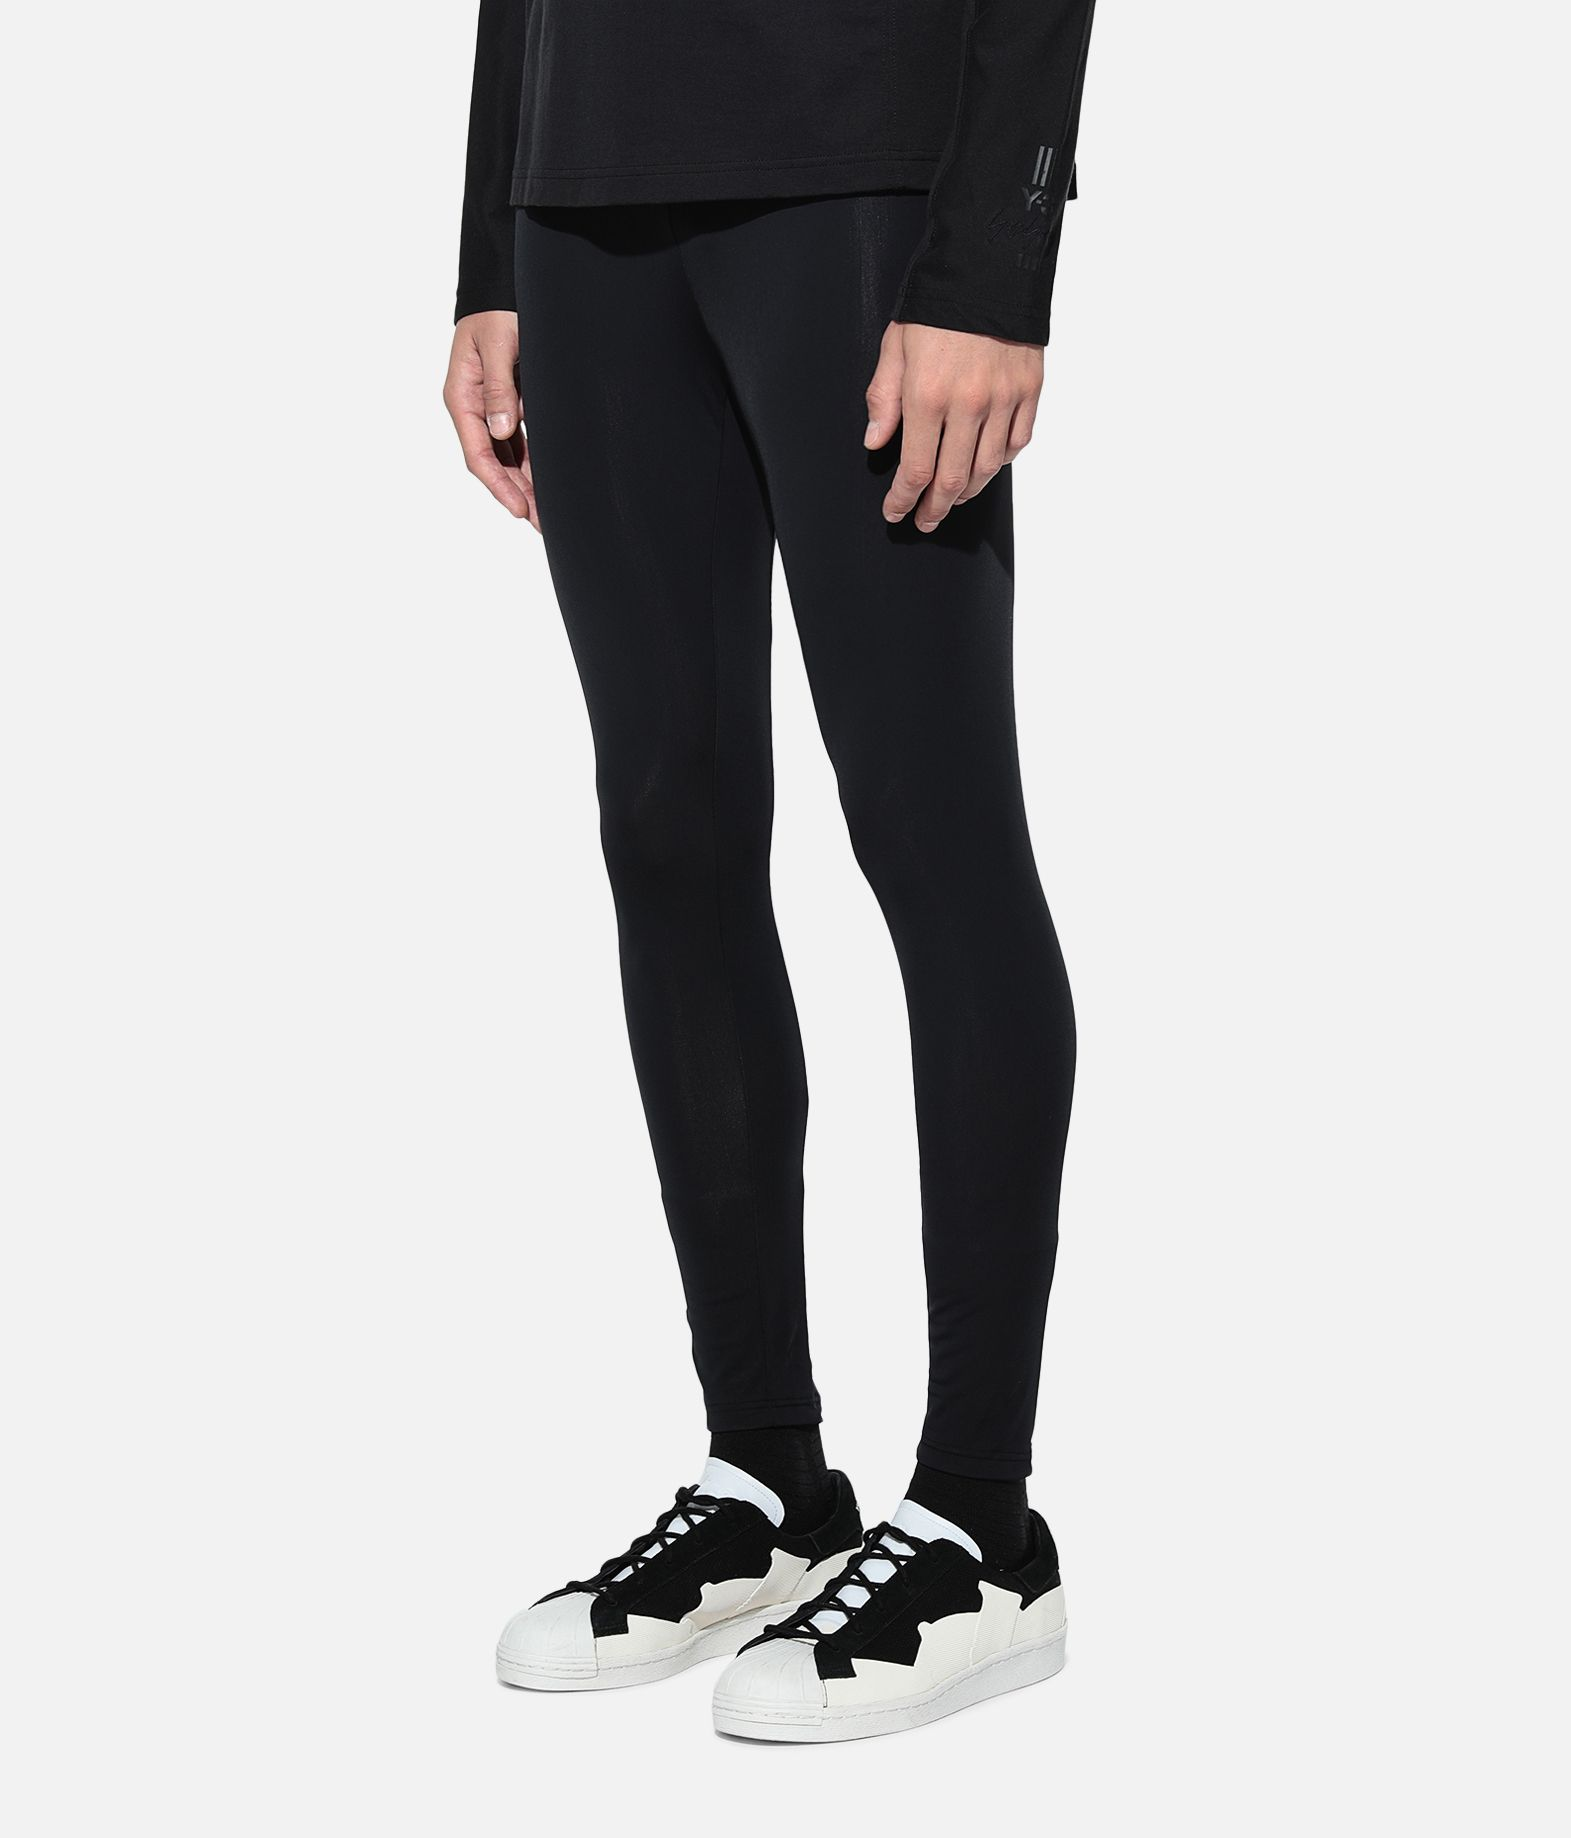 Y-3 Y-3 New Classic Tights Leggings Herren e